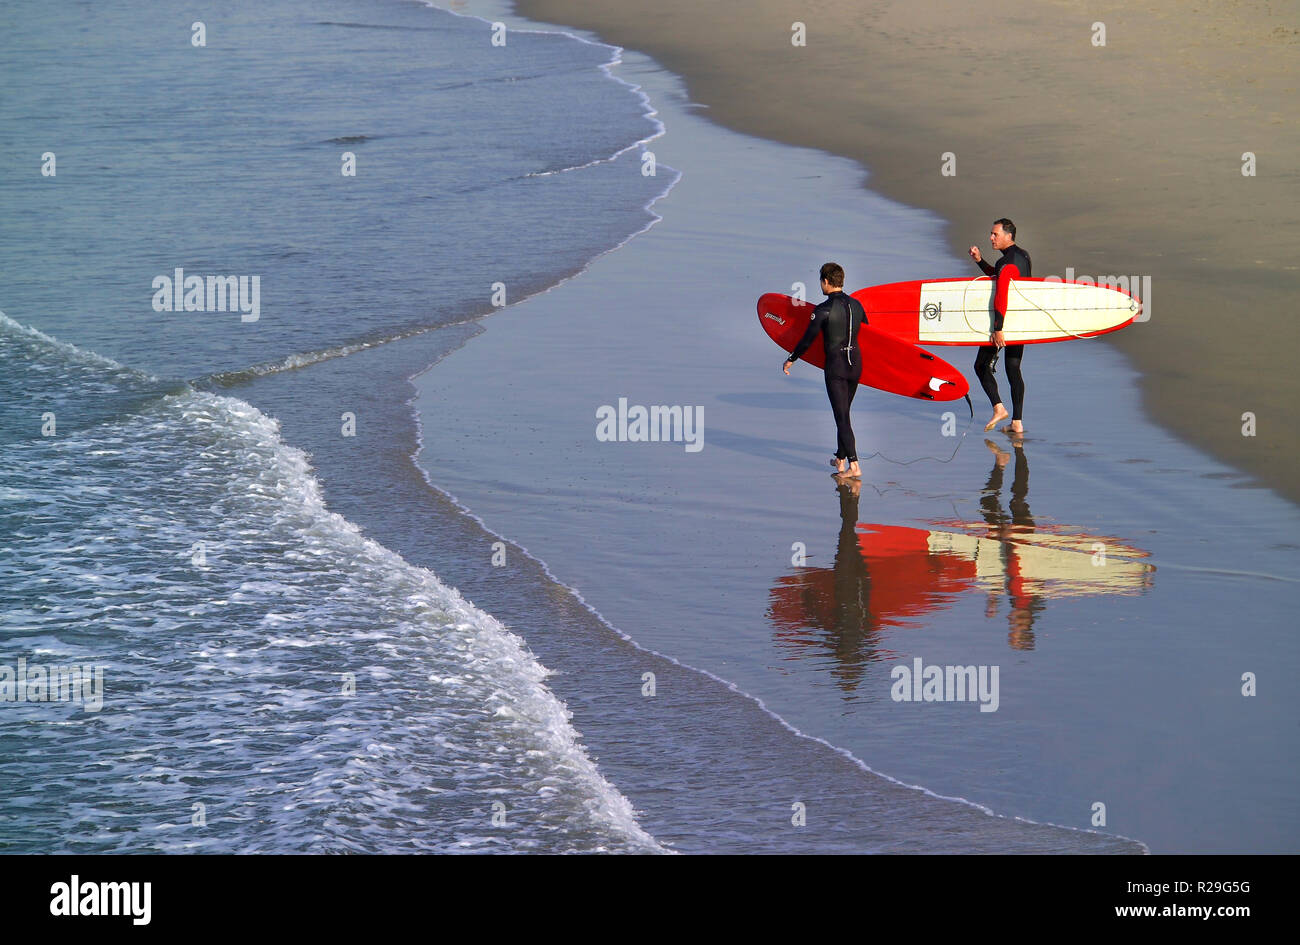 Two businessmen in wetsuits head from the beach at daybreak into the Pacific Ocean with their surfboards for some pre-work recreation at Newport Beach in Southern California, USA. Dozens of beaches along the Golden State's coastline offer easy access to waves that attract surfers of all ages and abilities. - Stock Image